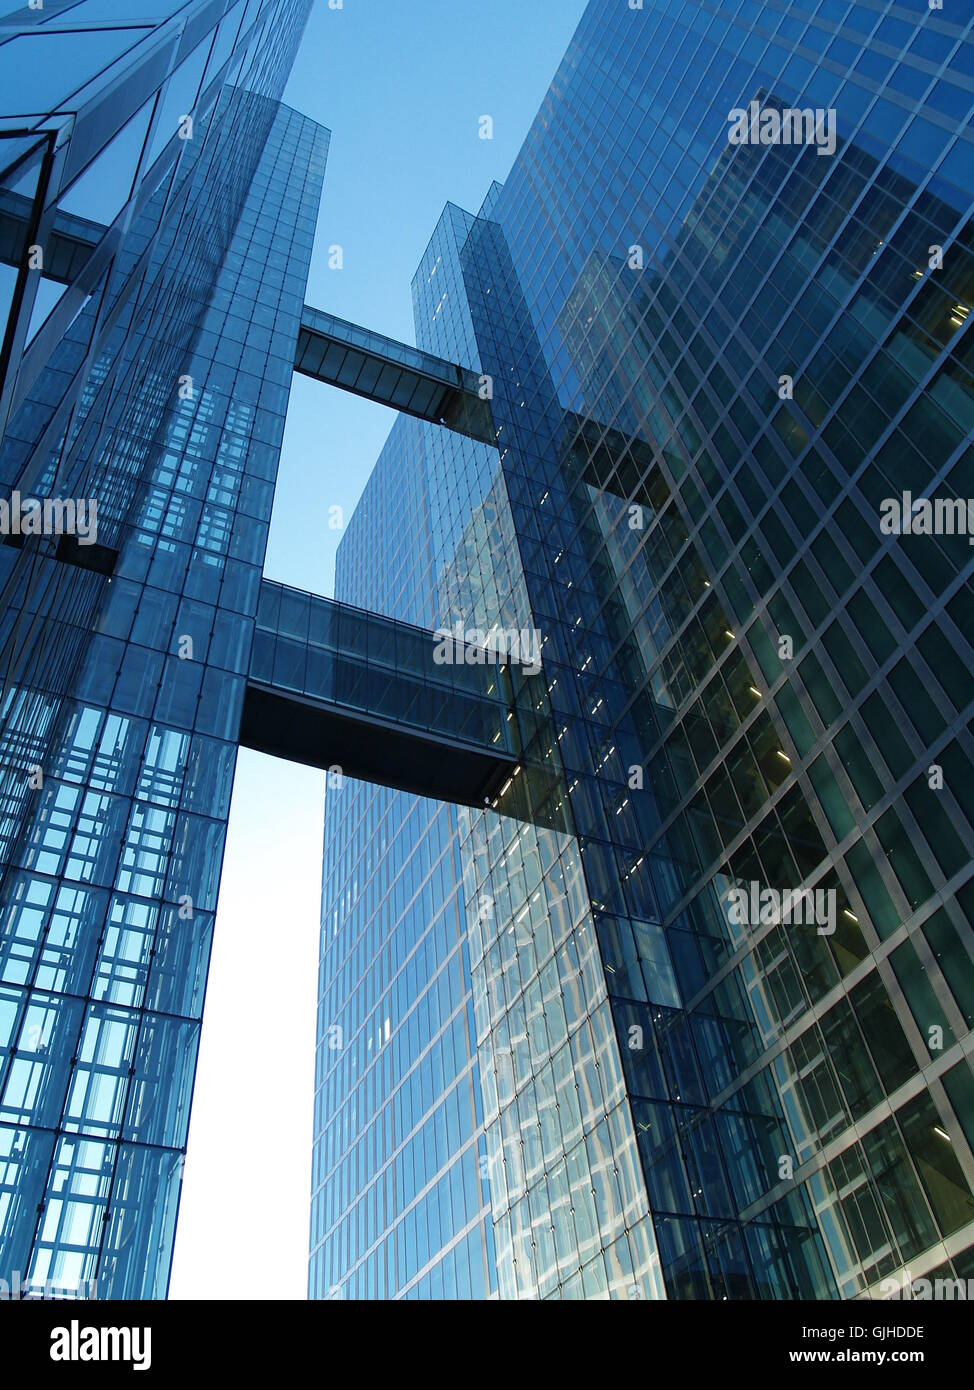 highlight towers 2 - Stock Image